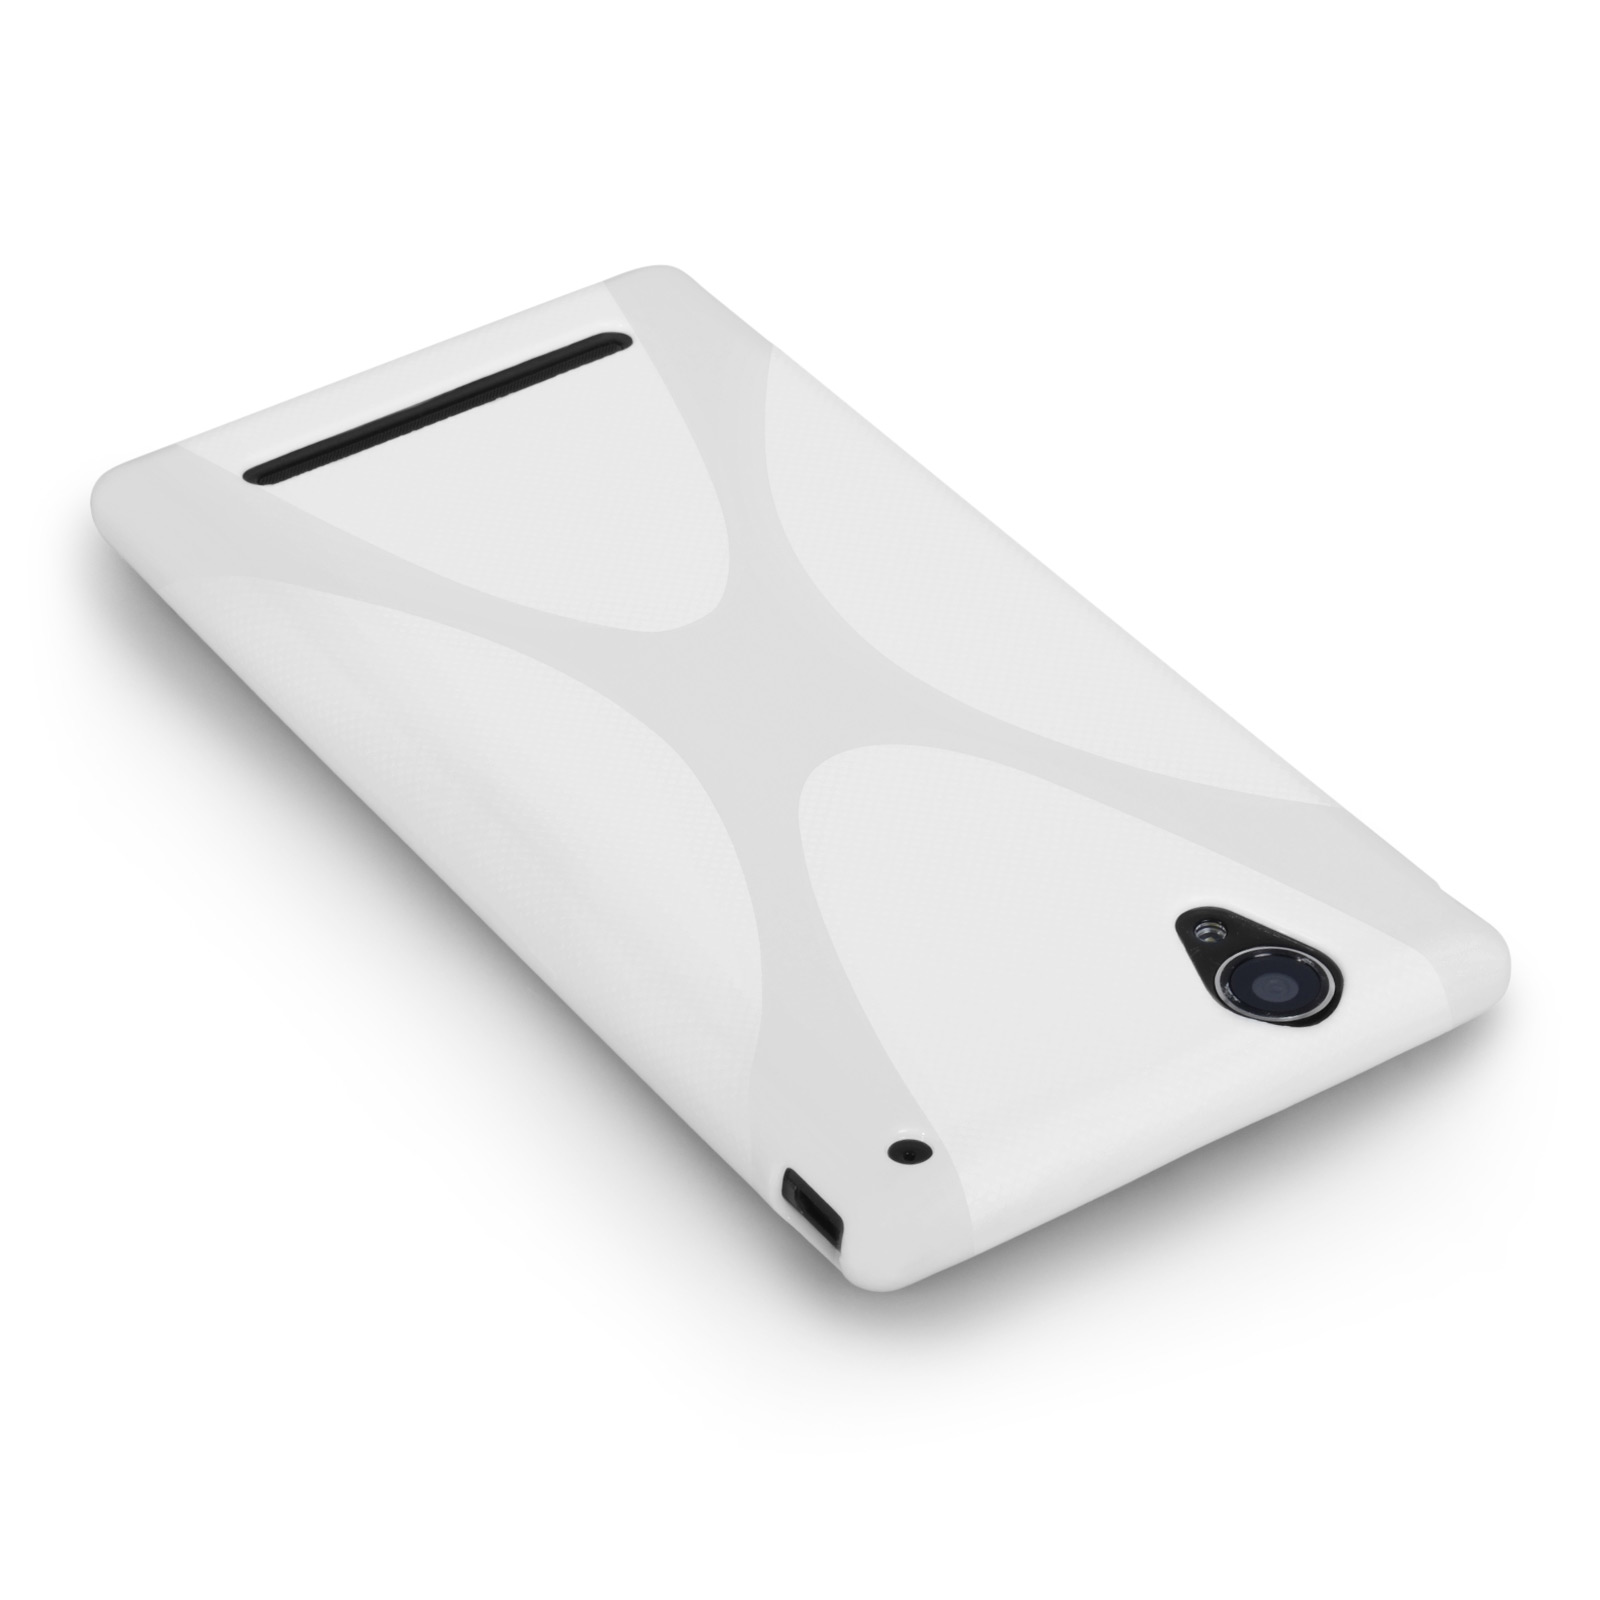 YouSave Sony Xperia T2 Ultra Silicone Gel X-Line Case - White